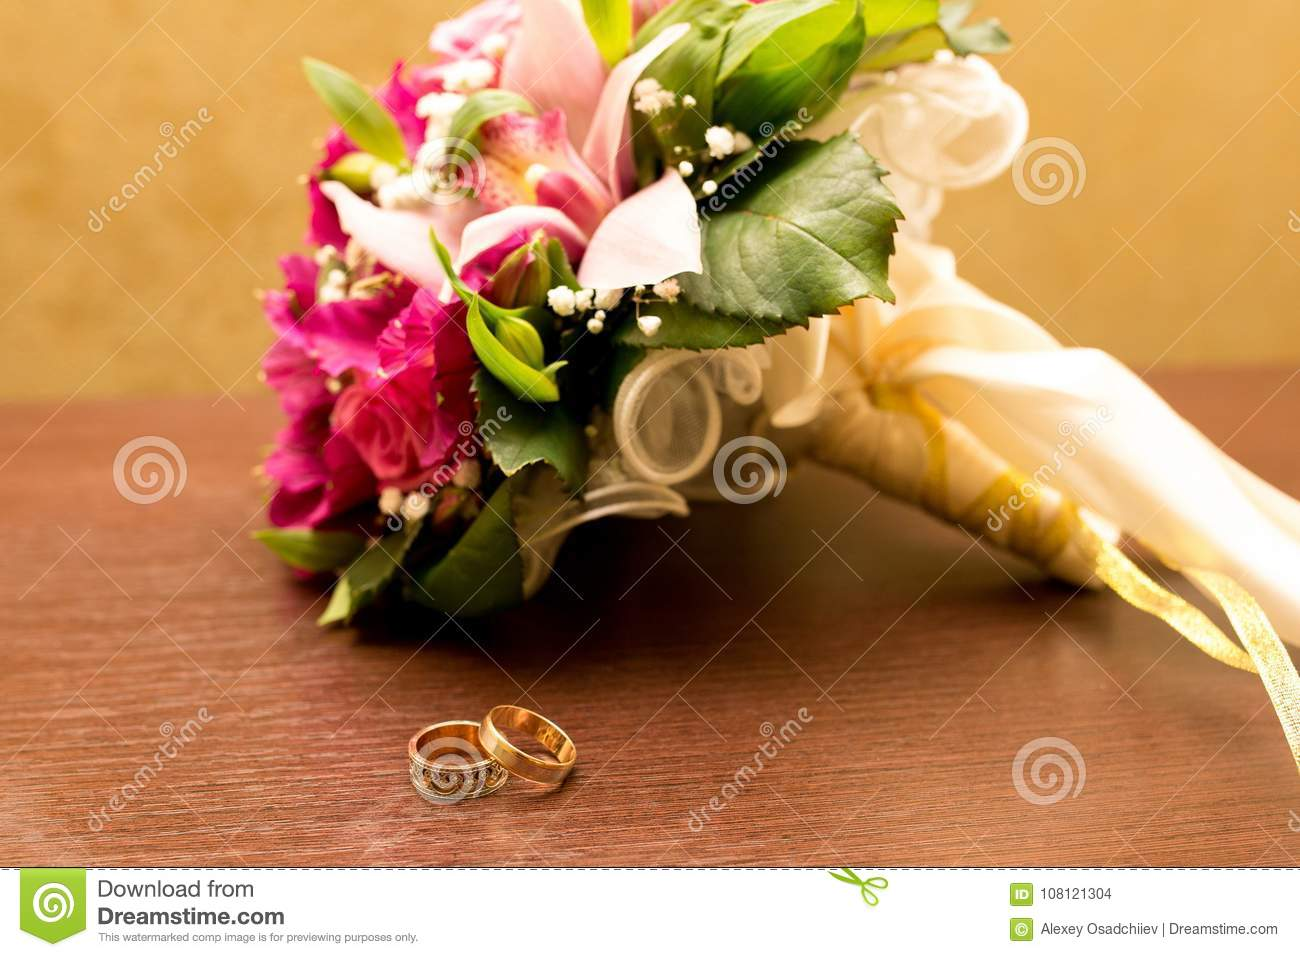 Big flower bouquet stock photo image of ceremony jewelry 108121304 download big flower bouquet stock photo image of ceremony jewelry 108121304 izmirmasajfo